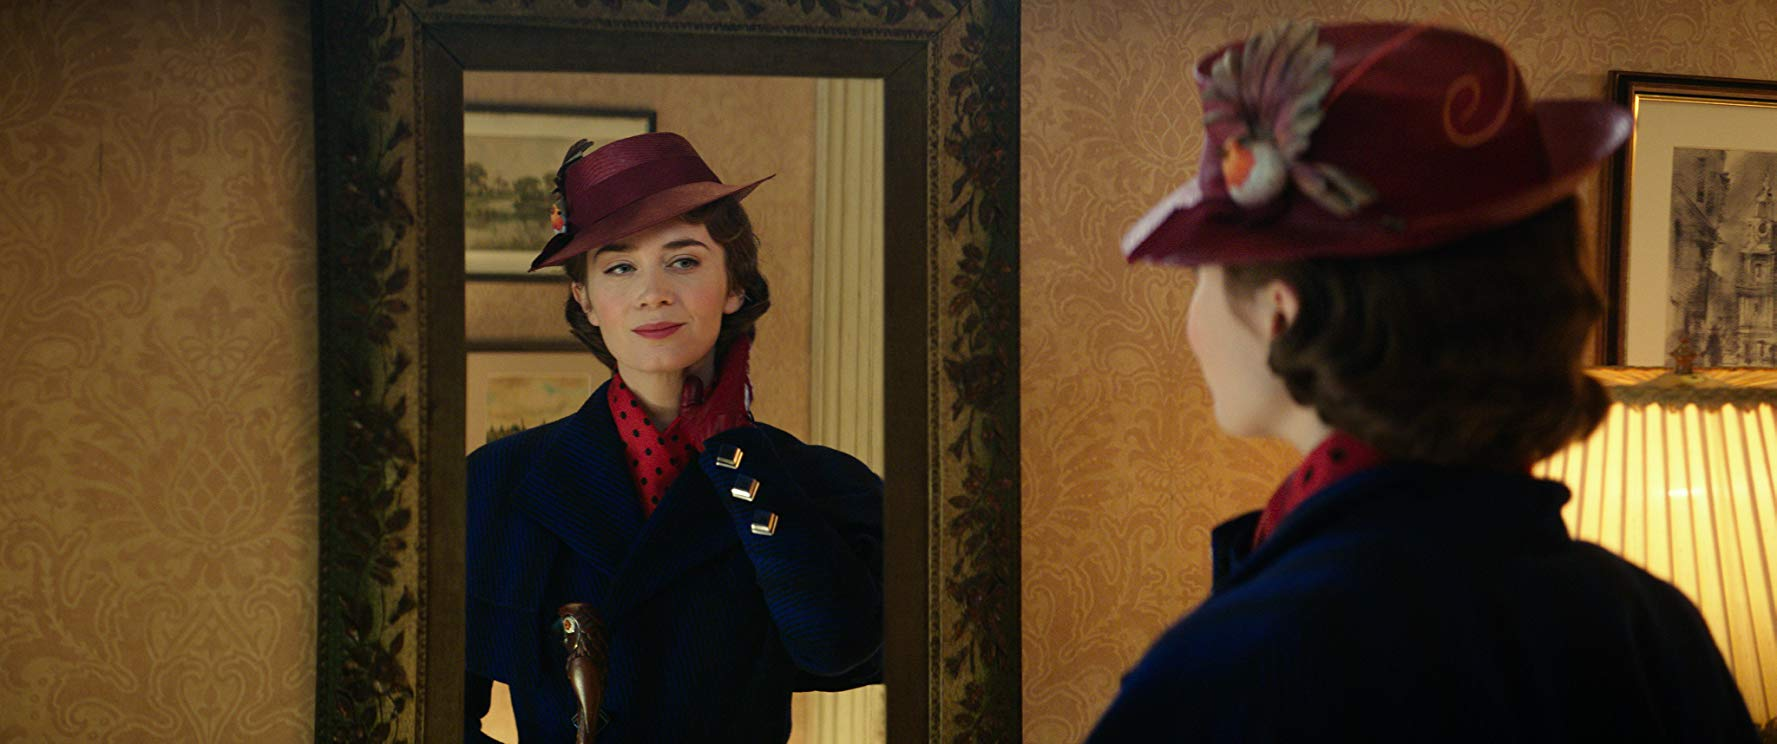 Mary Poppins Emily Blunt 2